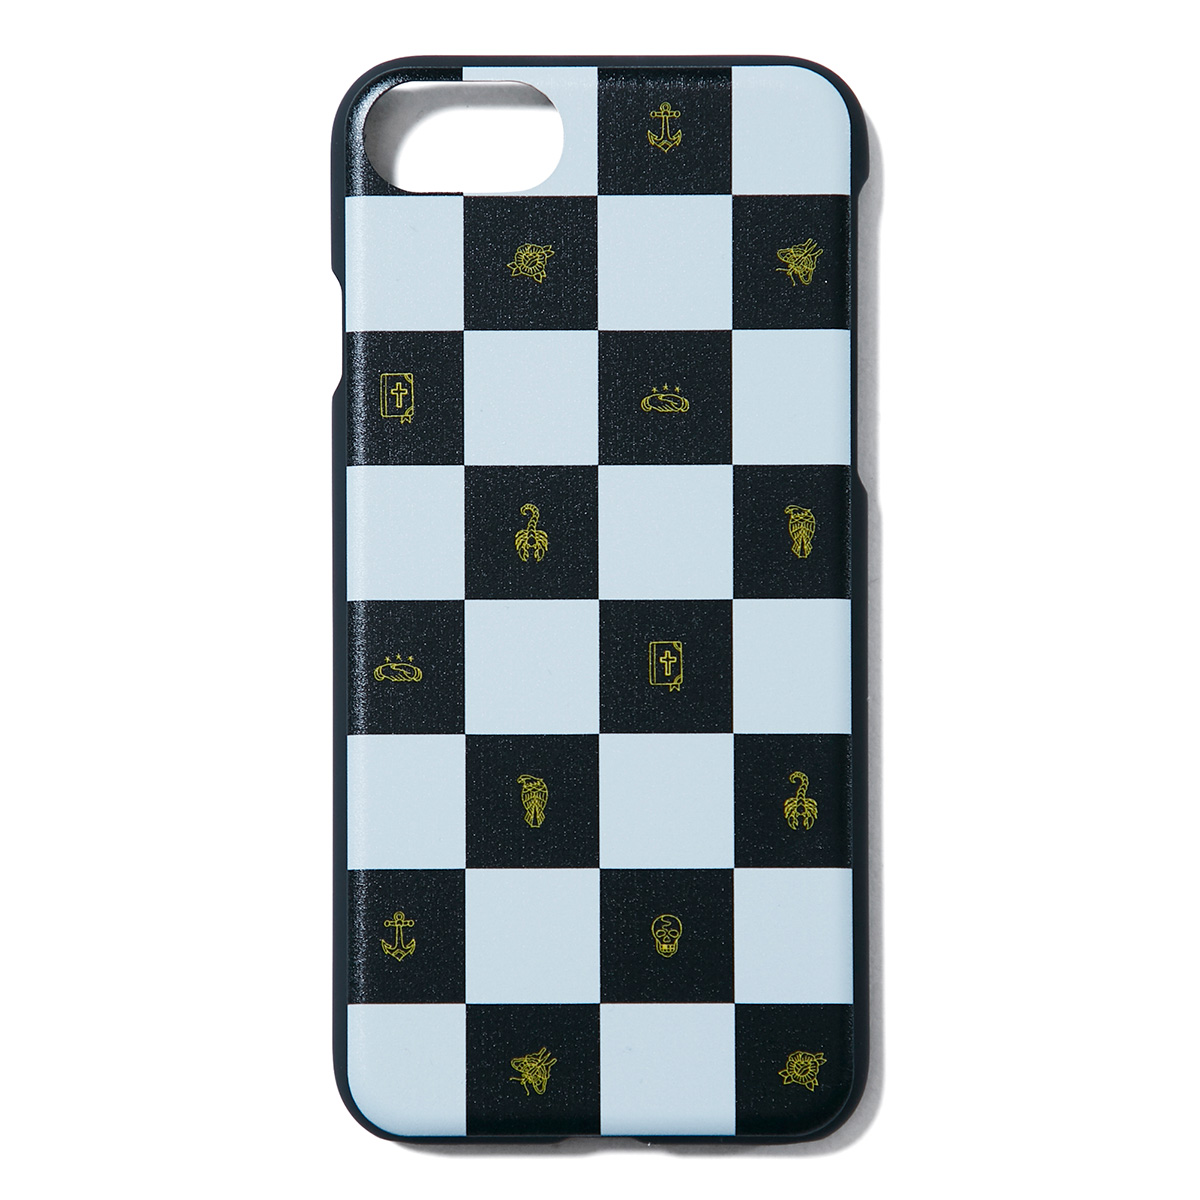 CHESSBOARD iPhone CASE